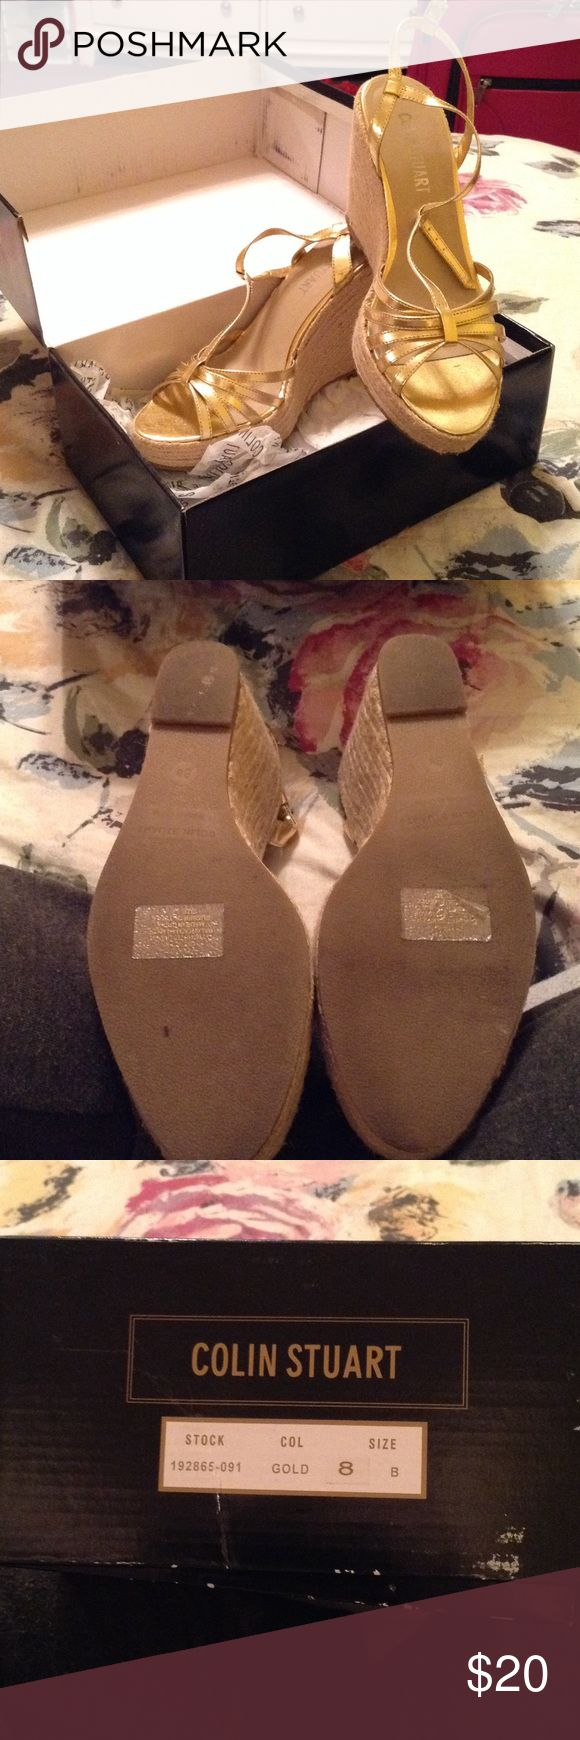 Gold espadrille wedges Gold and fan espadrille wedges by Colin Stuart. Never worn Colin Stuart Shoes Espadrilles